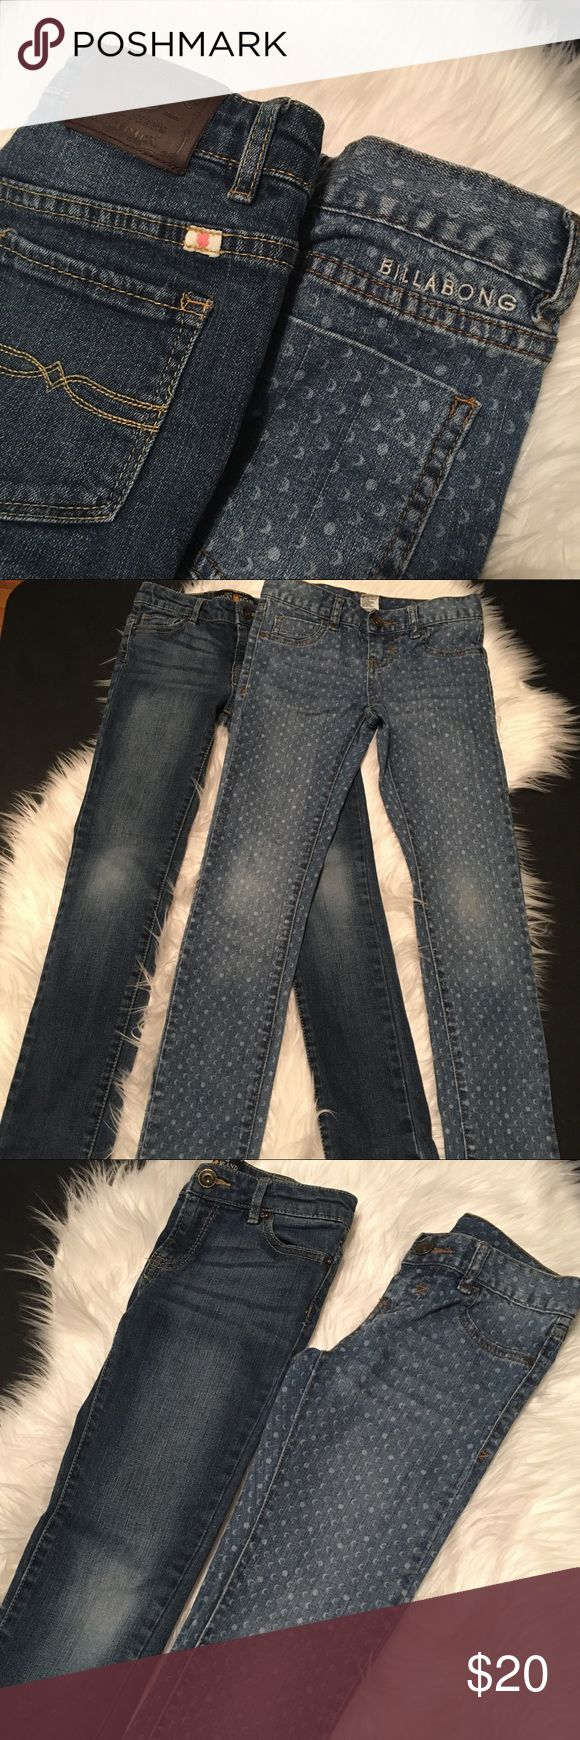 Lucky Brand and Billabong Girls Jeans - 2 Pairs Lucky 🍀 Brand Cate Skinny Jeans and Billabong Printed Jeans. Both size 8. GUC. Both have faded knees, but they are free from stains or tears/holes. Lucky Brand has adjustable waist. Feel free to make an offer using the offer link. Bundle 2+ listings to save more. 🚫Trades. 📦Same or next day shipping. 📫 Lucky Brand Bottoms Jeans